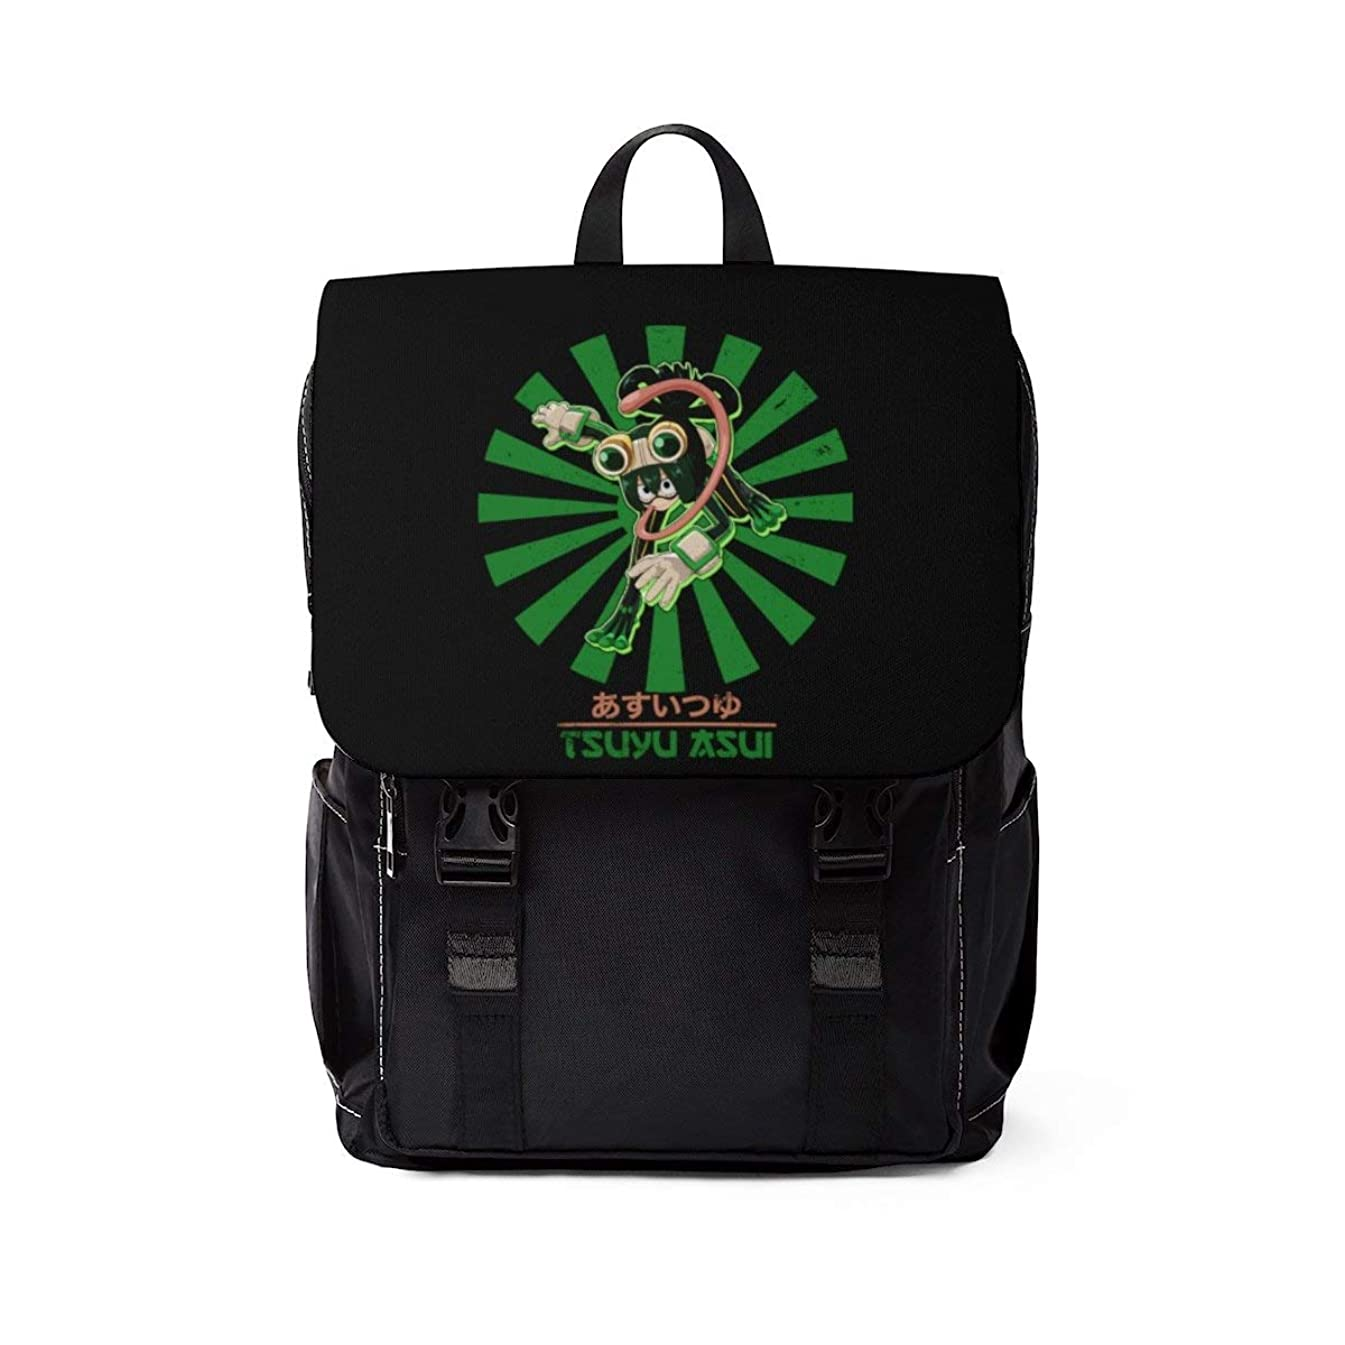 Tsuyu Asui Froppy Vintage Art - My Hero Academia Inspired Unisex Casual Shoulder Daypack Backpack